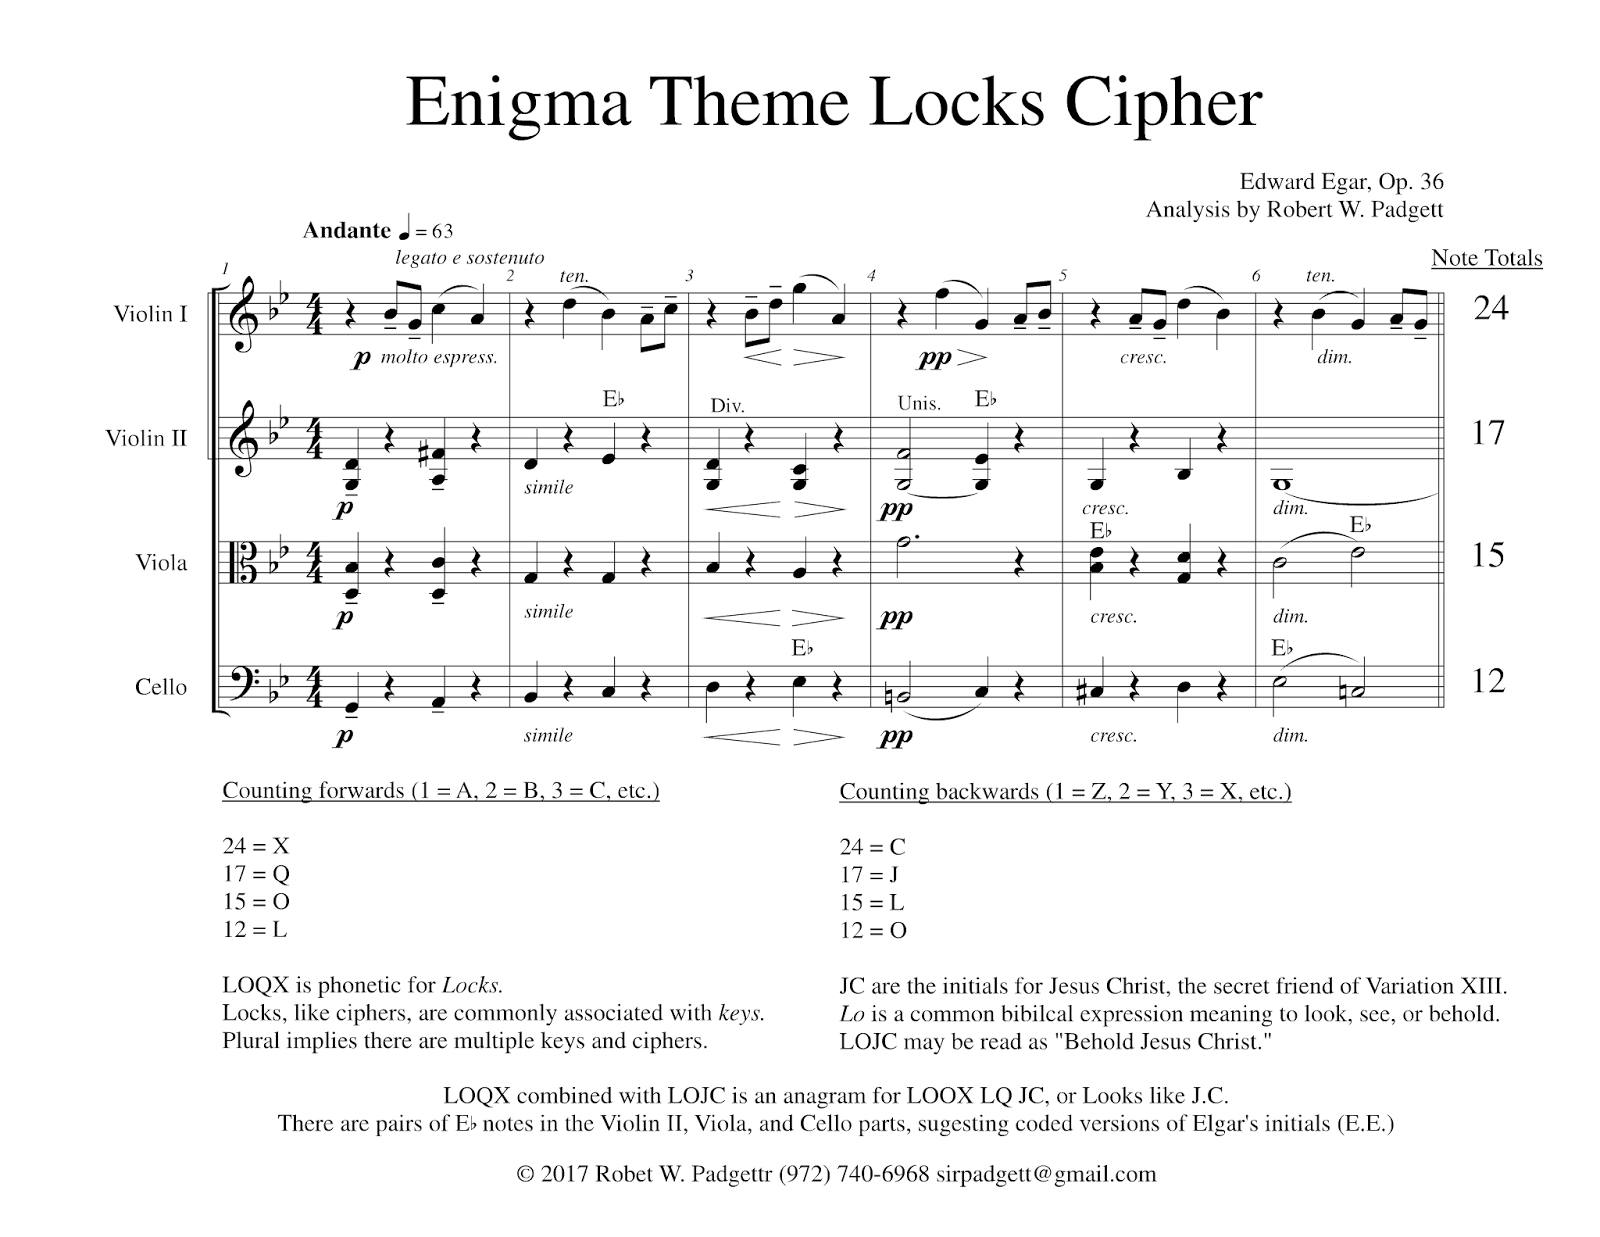 This Cryptogram Relies On The Note Totals From Each String Part Over Enigma Themes First Six Measures To Encode Specific Letters Of Alphabet